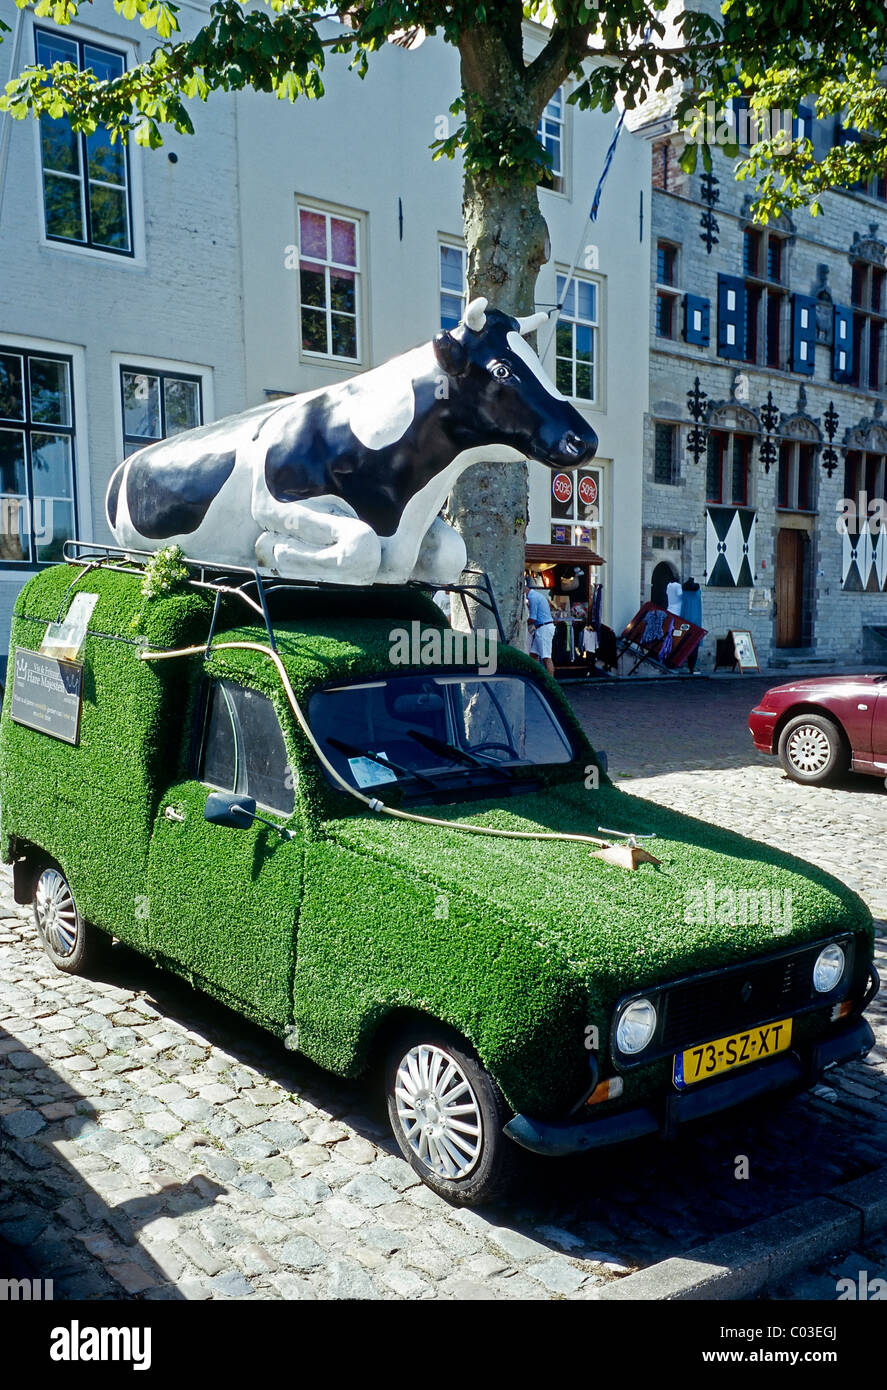 Inventive car with a cow on the roof, body covered with artificial turf, Veere, Walcheren, Zeeland, Netherlands, - Stock Image